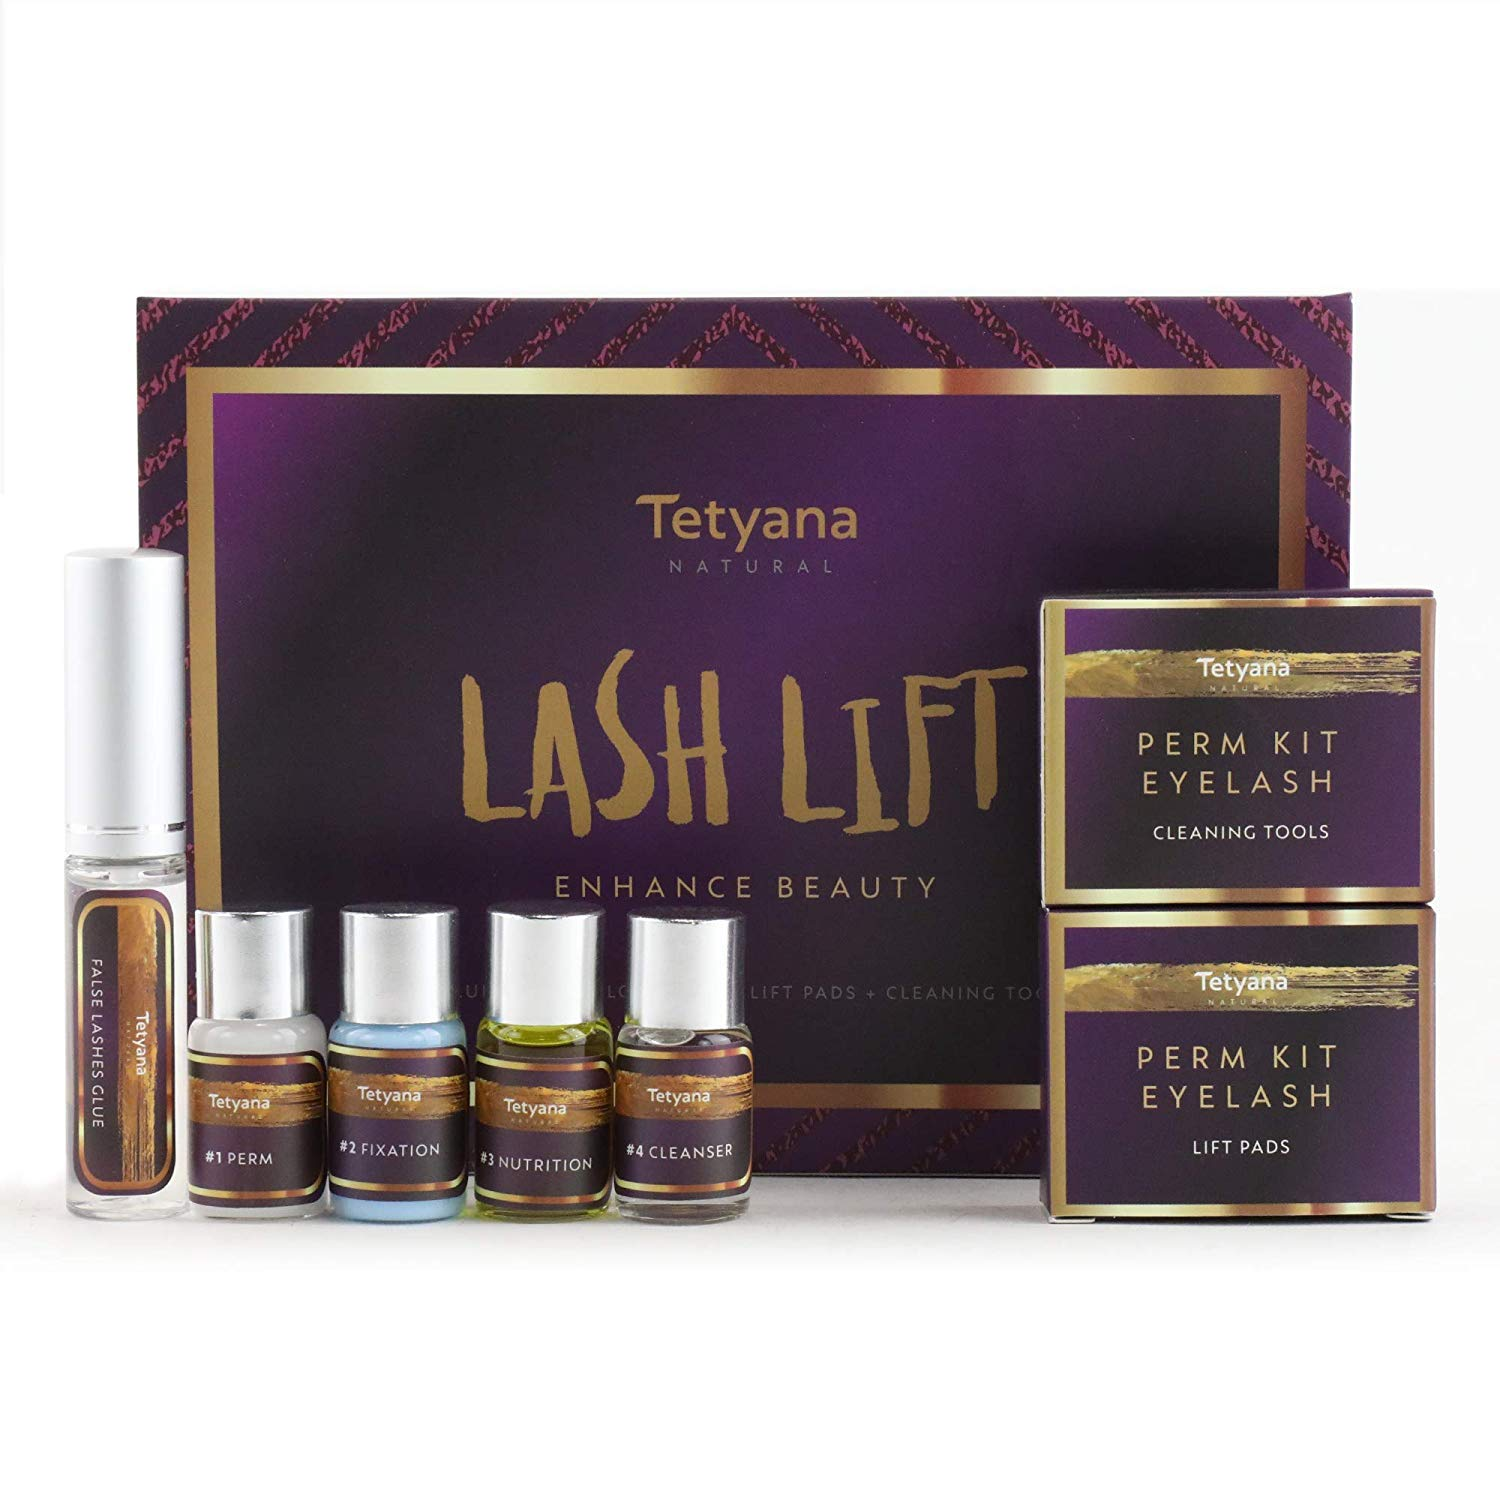 Tetyana naturals Eyelash Perm Kit, Professional Quality Lash Lift, Semi-Permanent Curling Perming Wave, Lotion Liquid Set